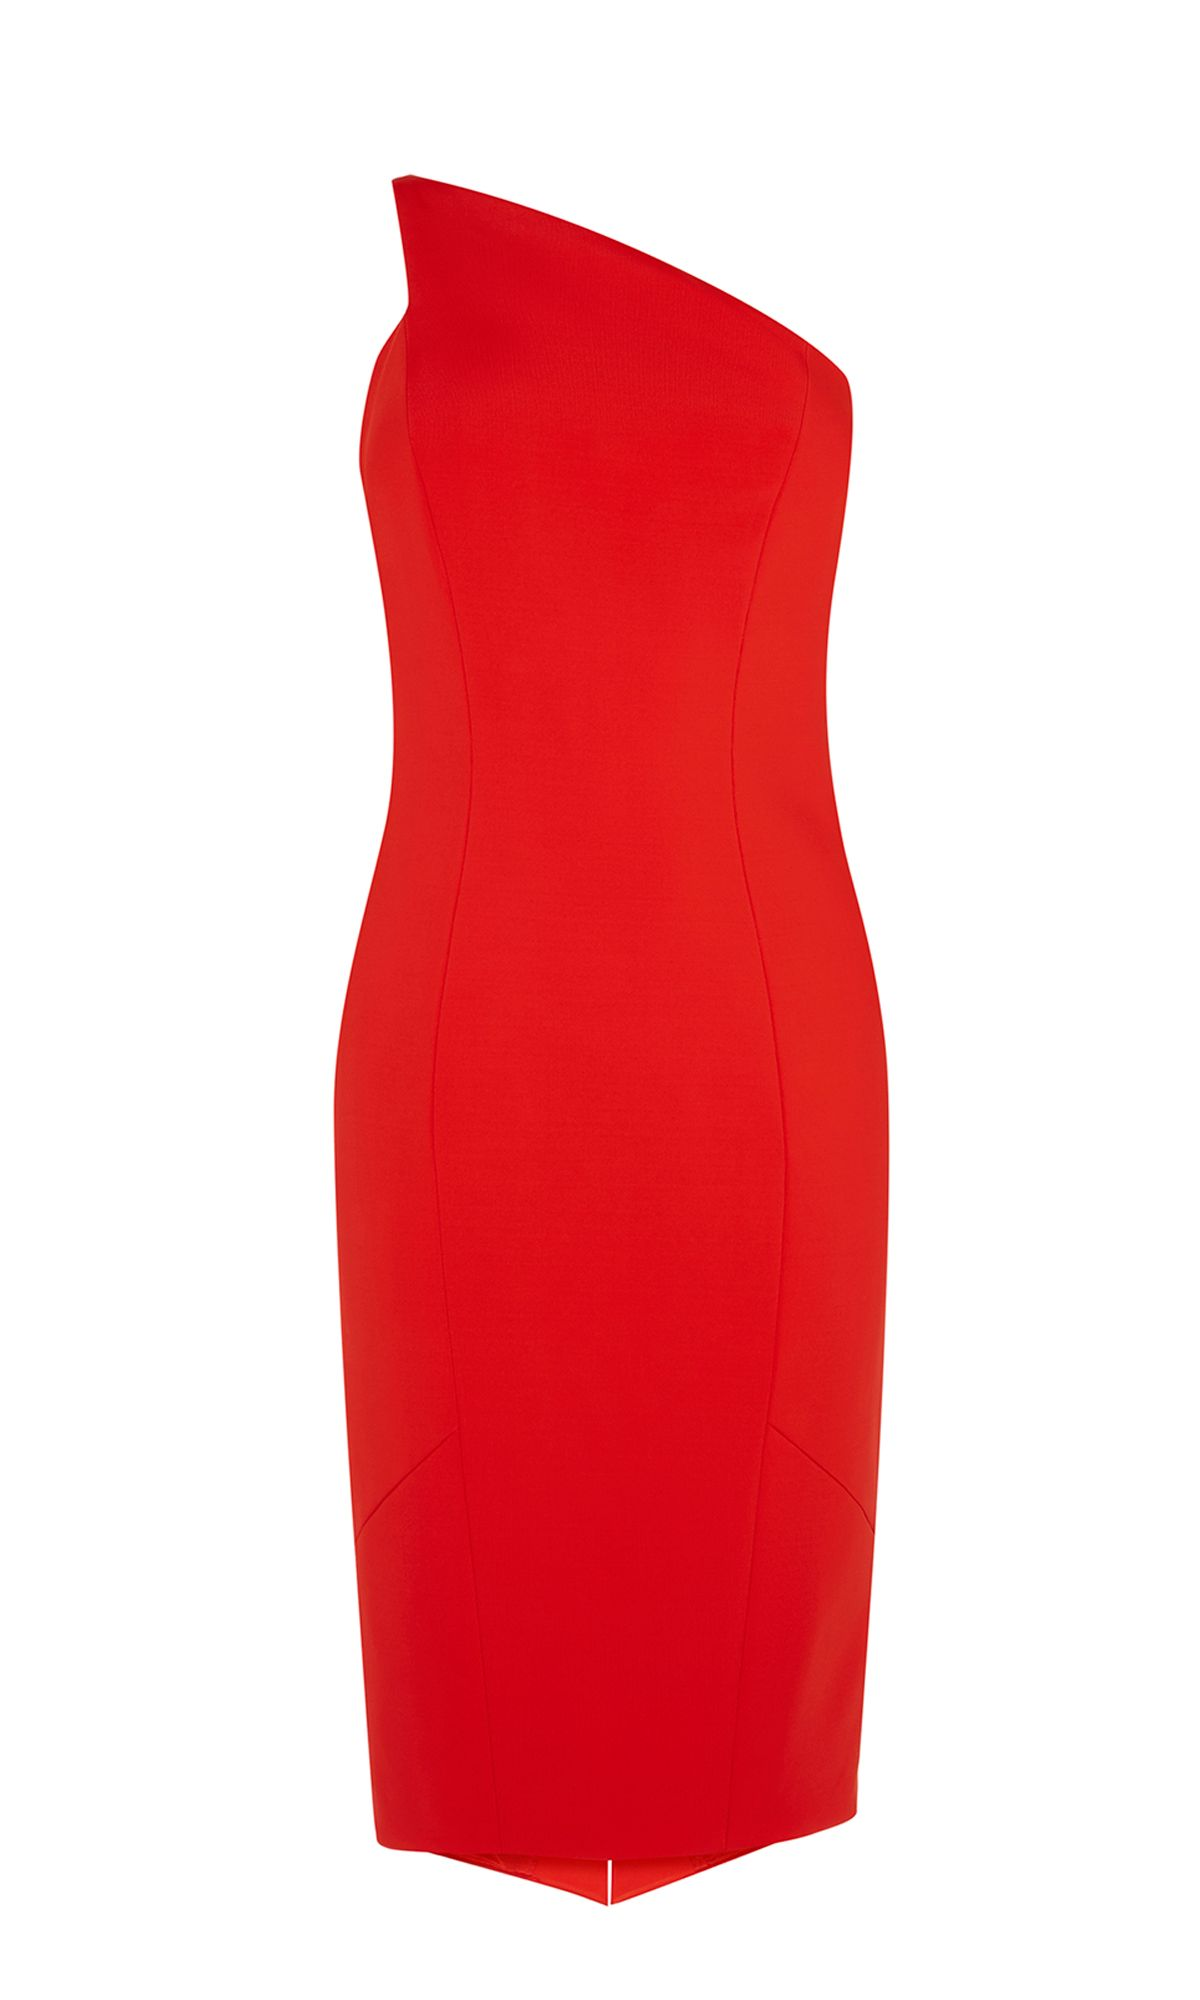 Karen Millen One-Shoulder Pencil Dress, Red